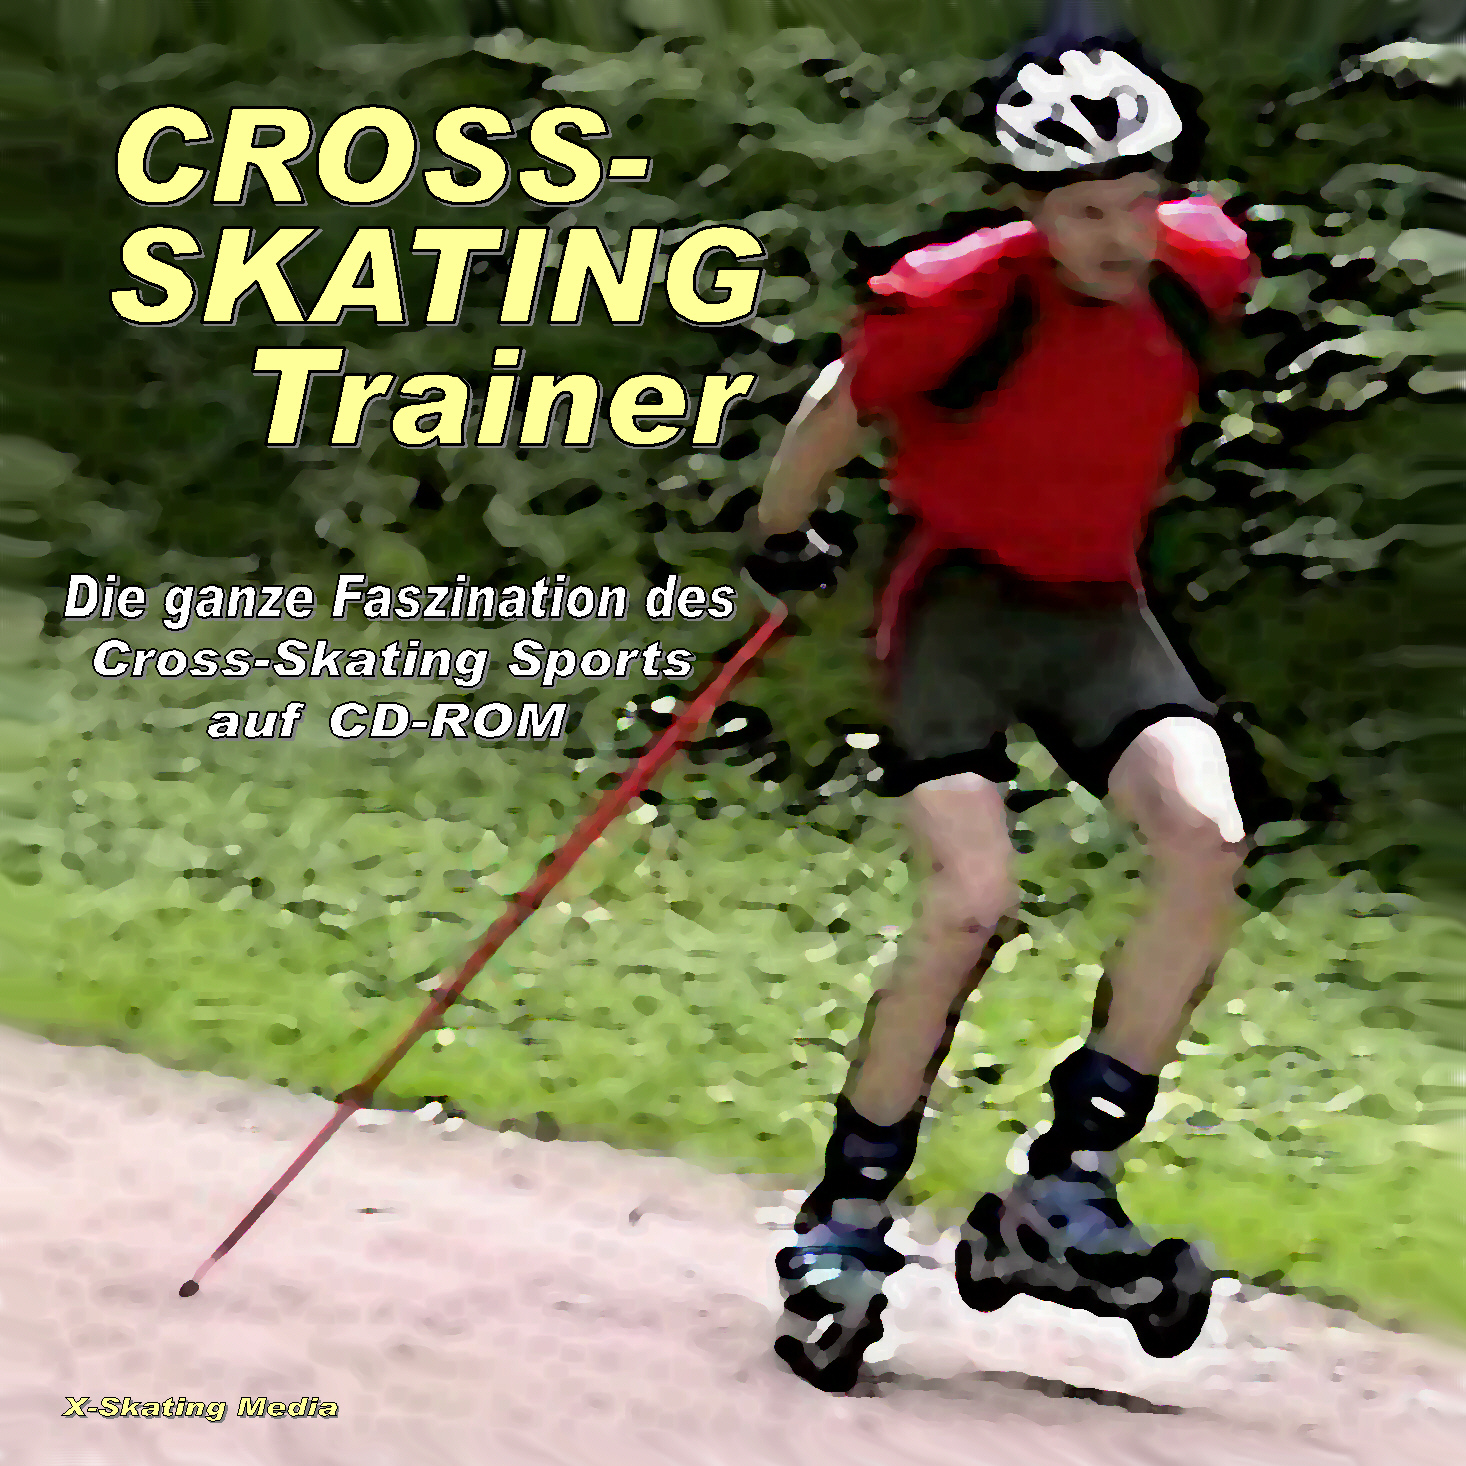 CD-ROM Cross-Skating Trainer im Cross-Skate-Shop